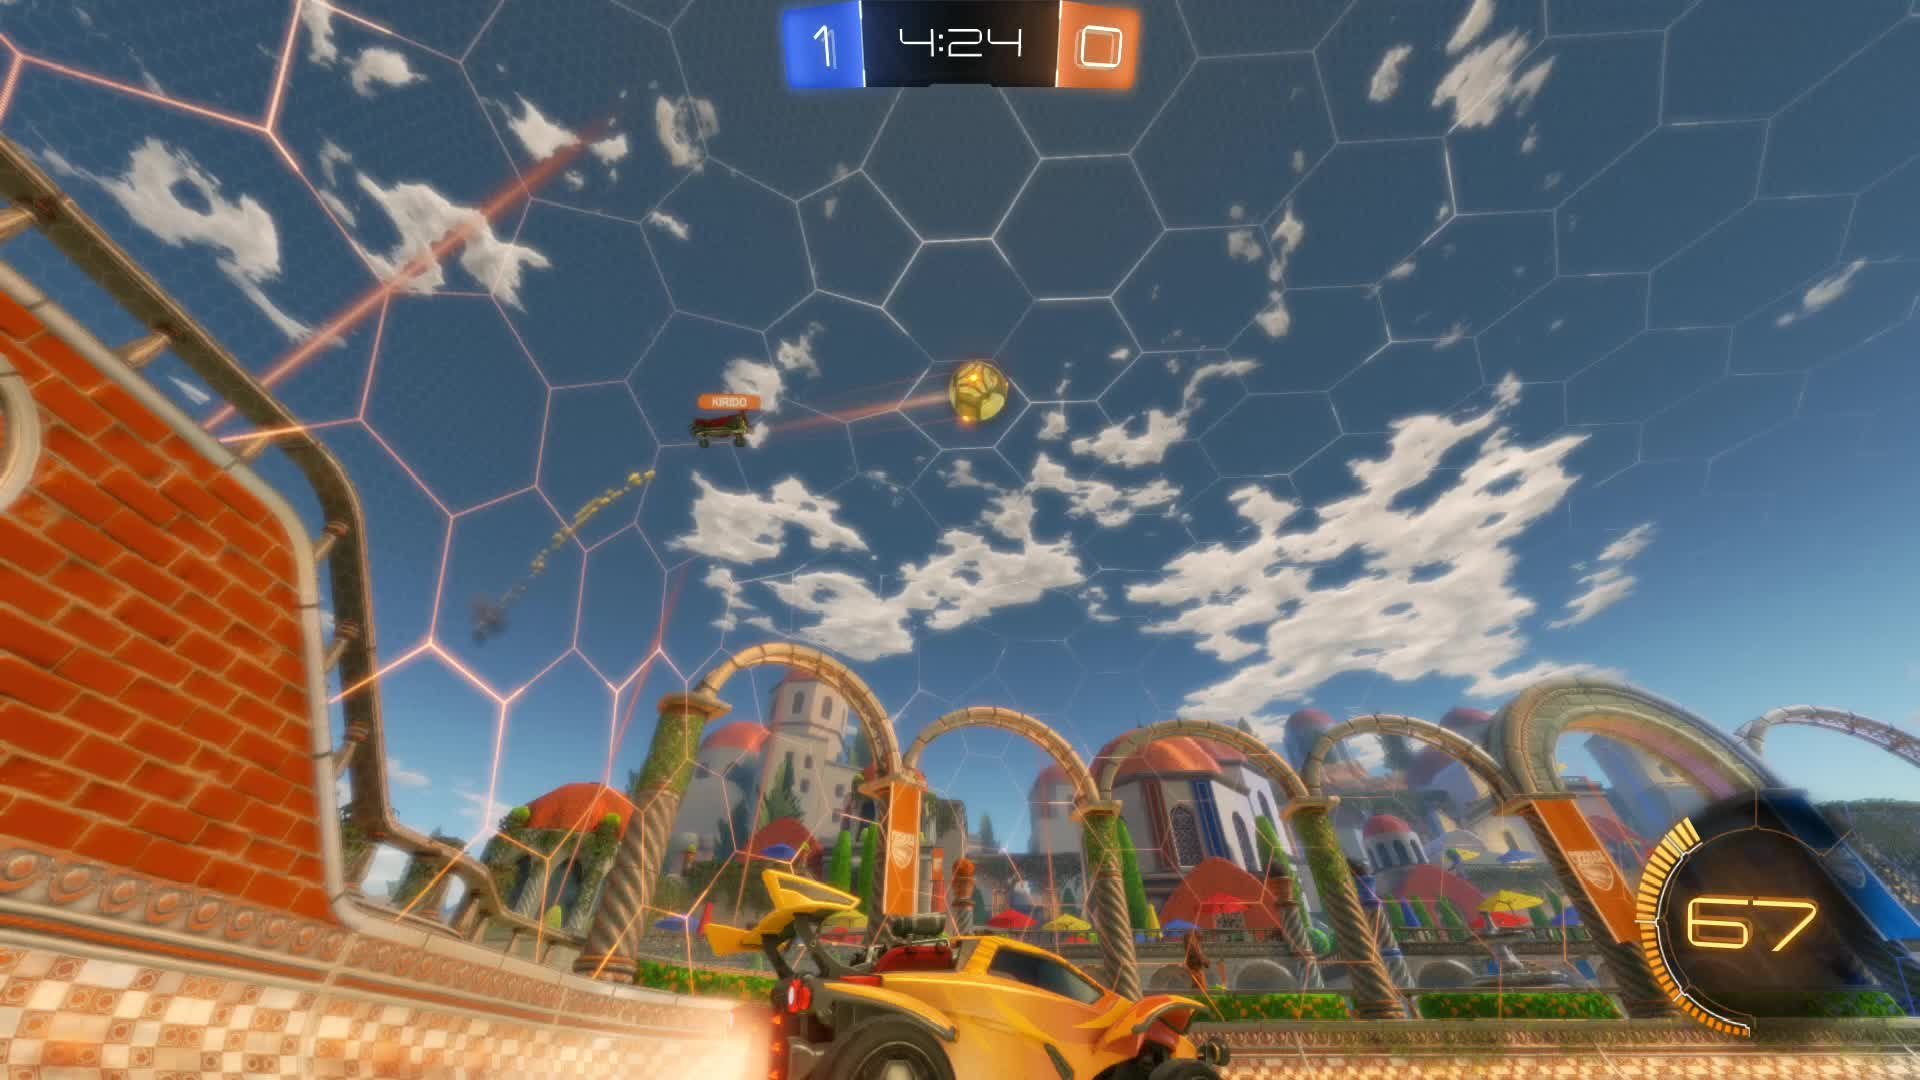 Gif Your Game, GifYourGame, Goal, Rocket League, RocketLeague, Traceur YT, Goal 2: Traceur YT GIFs